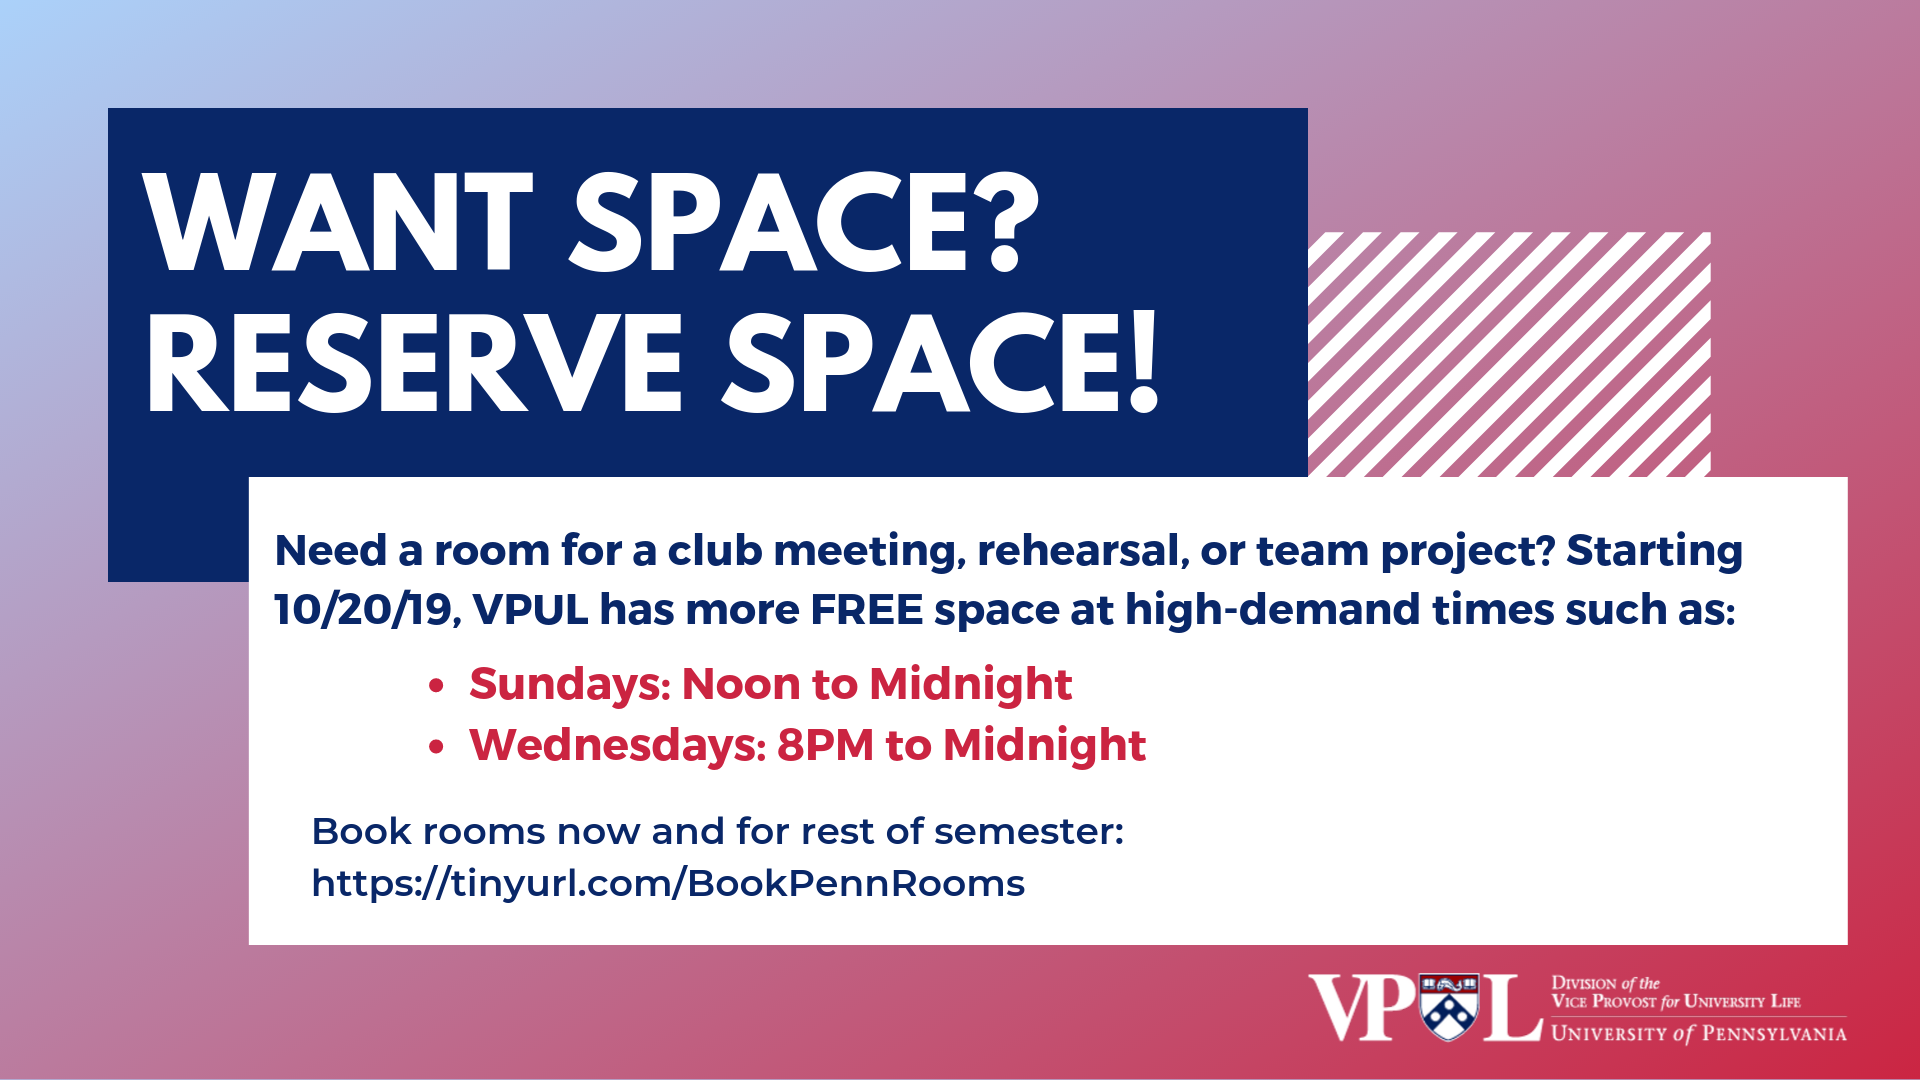 Want space? Reserve space!